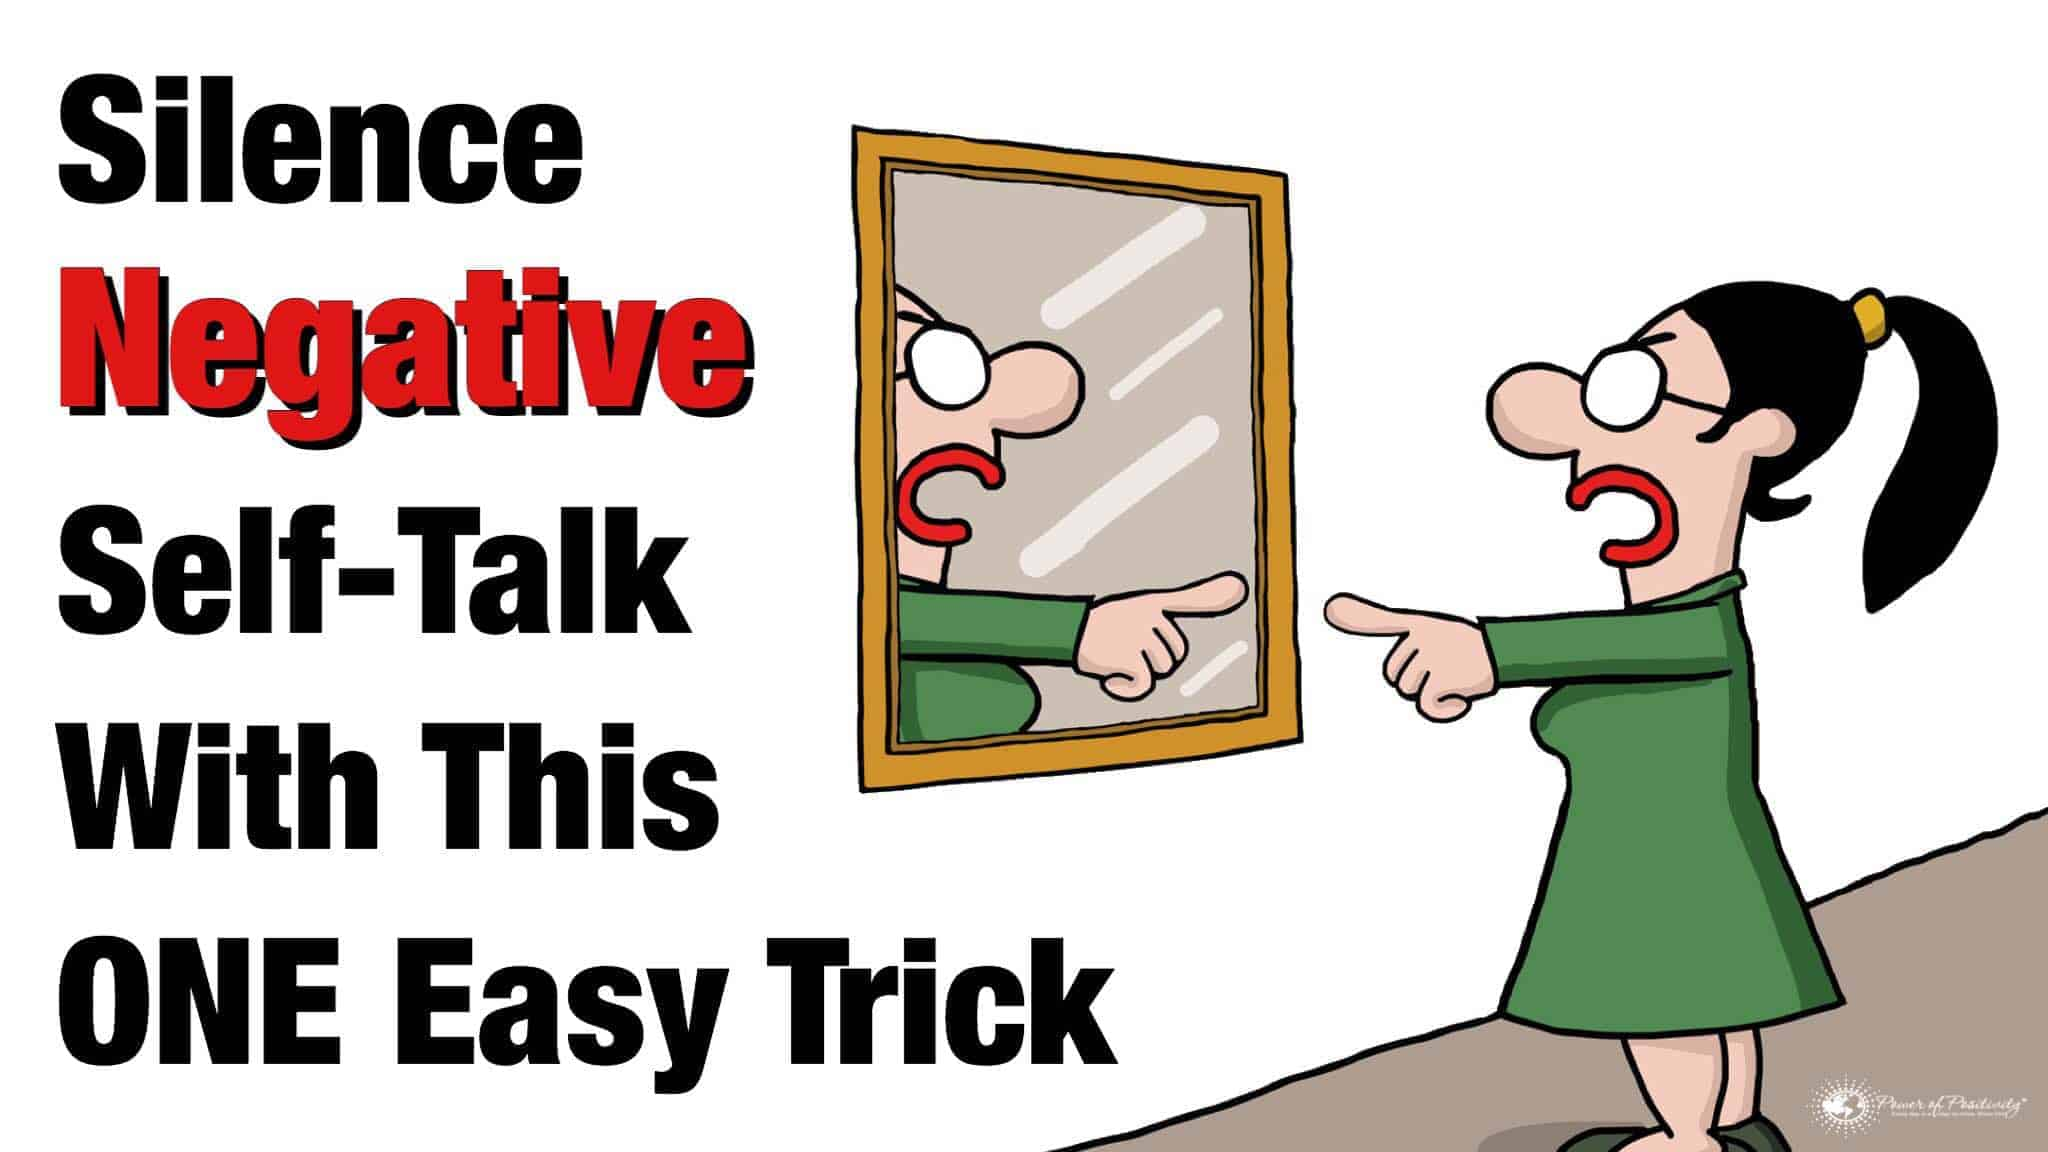 Silence Negative Self Talk With This One Easy Trick